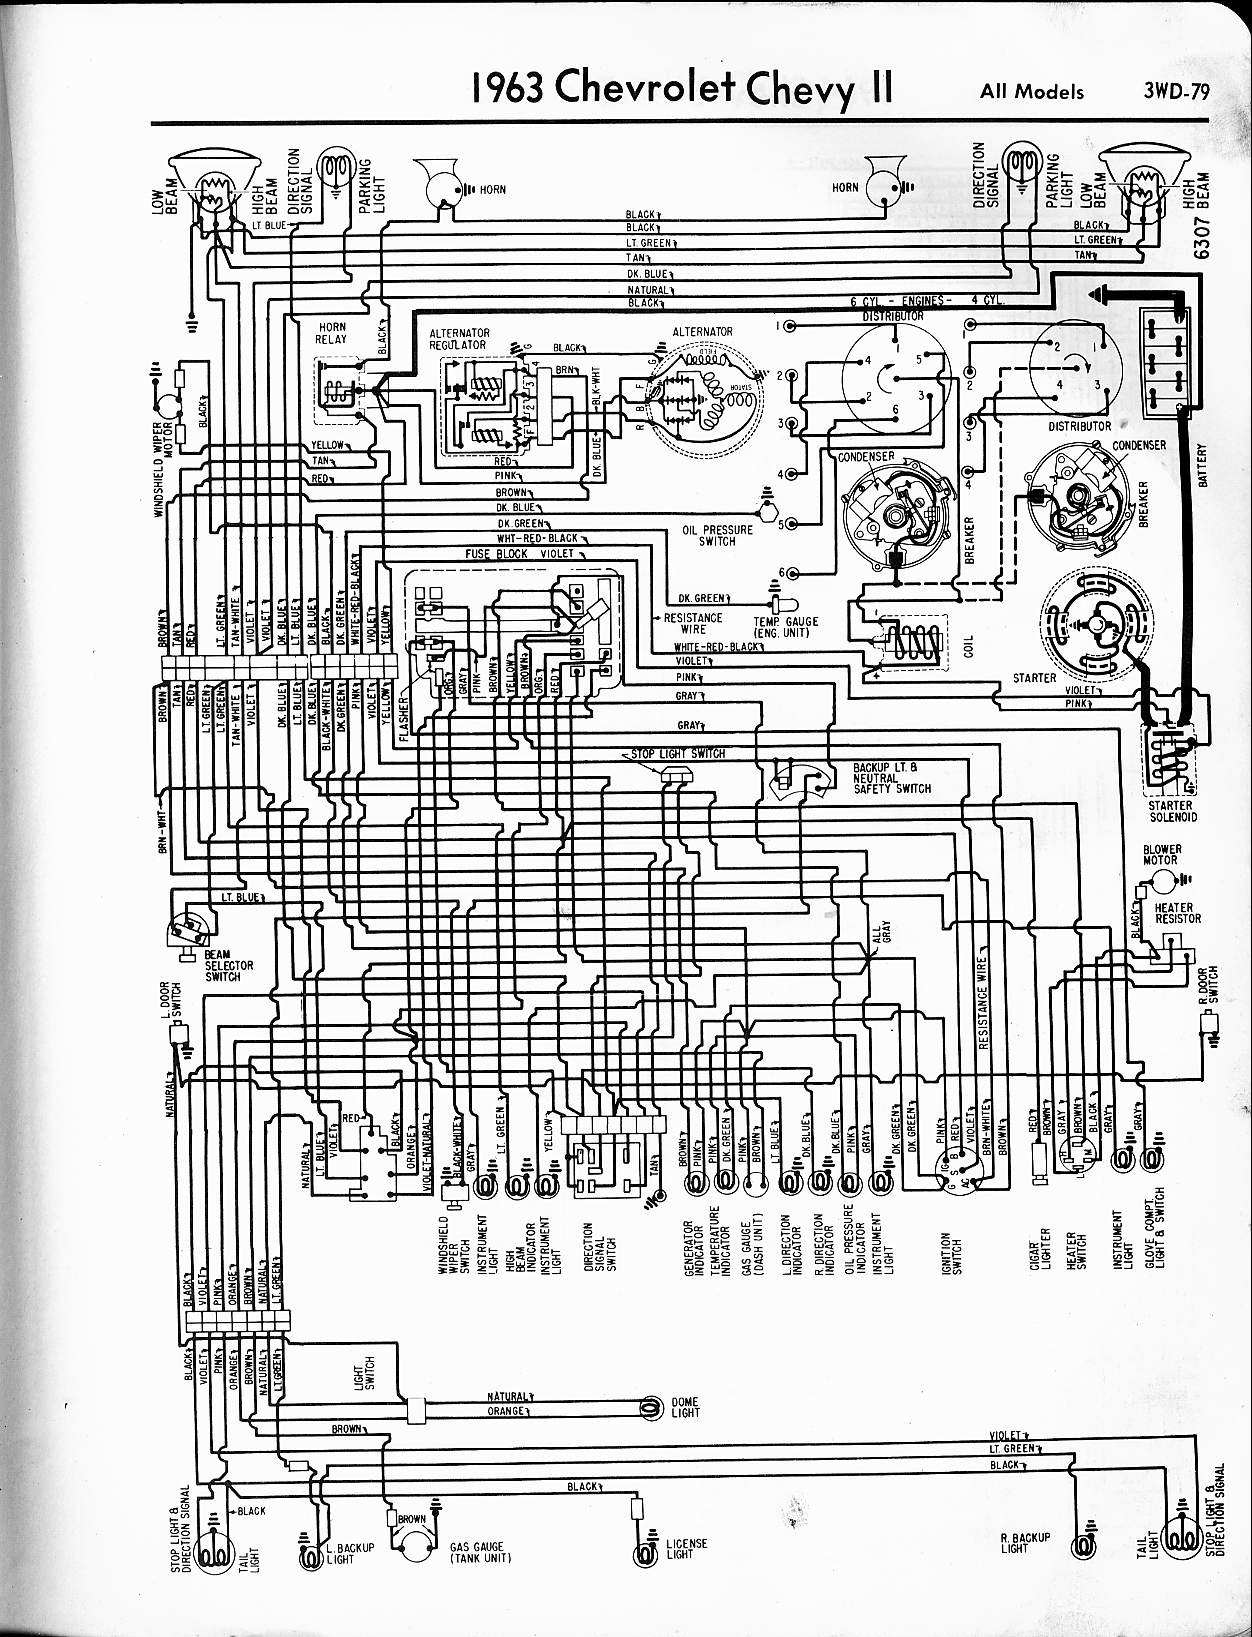 MWireChev63_3WD 079 1966 corvette wiring diagram 1973 corvette wiring diagram \u2022 wiring 65 corvette wiring diagram at soozxer.org